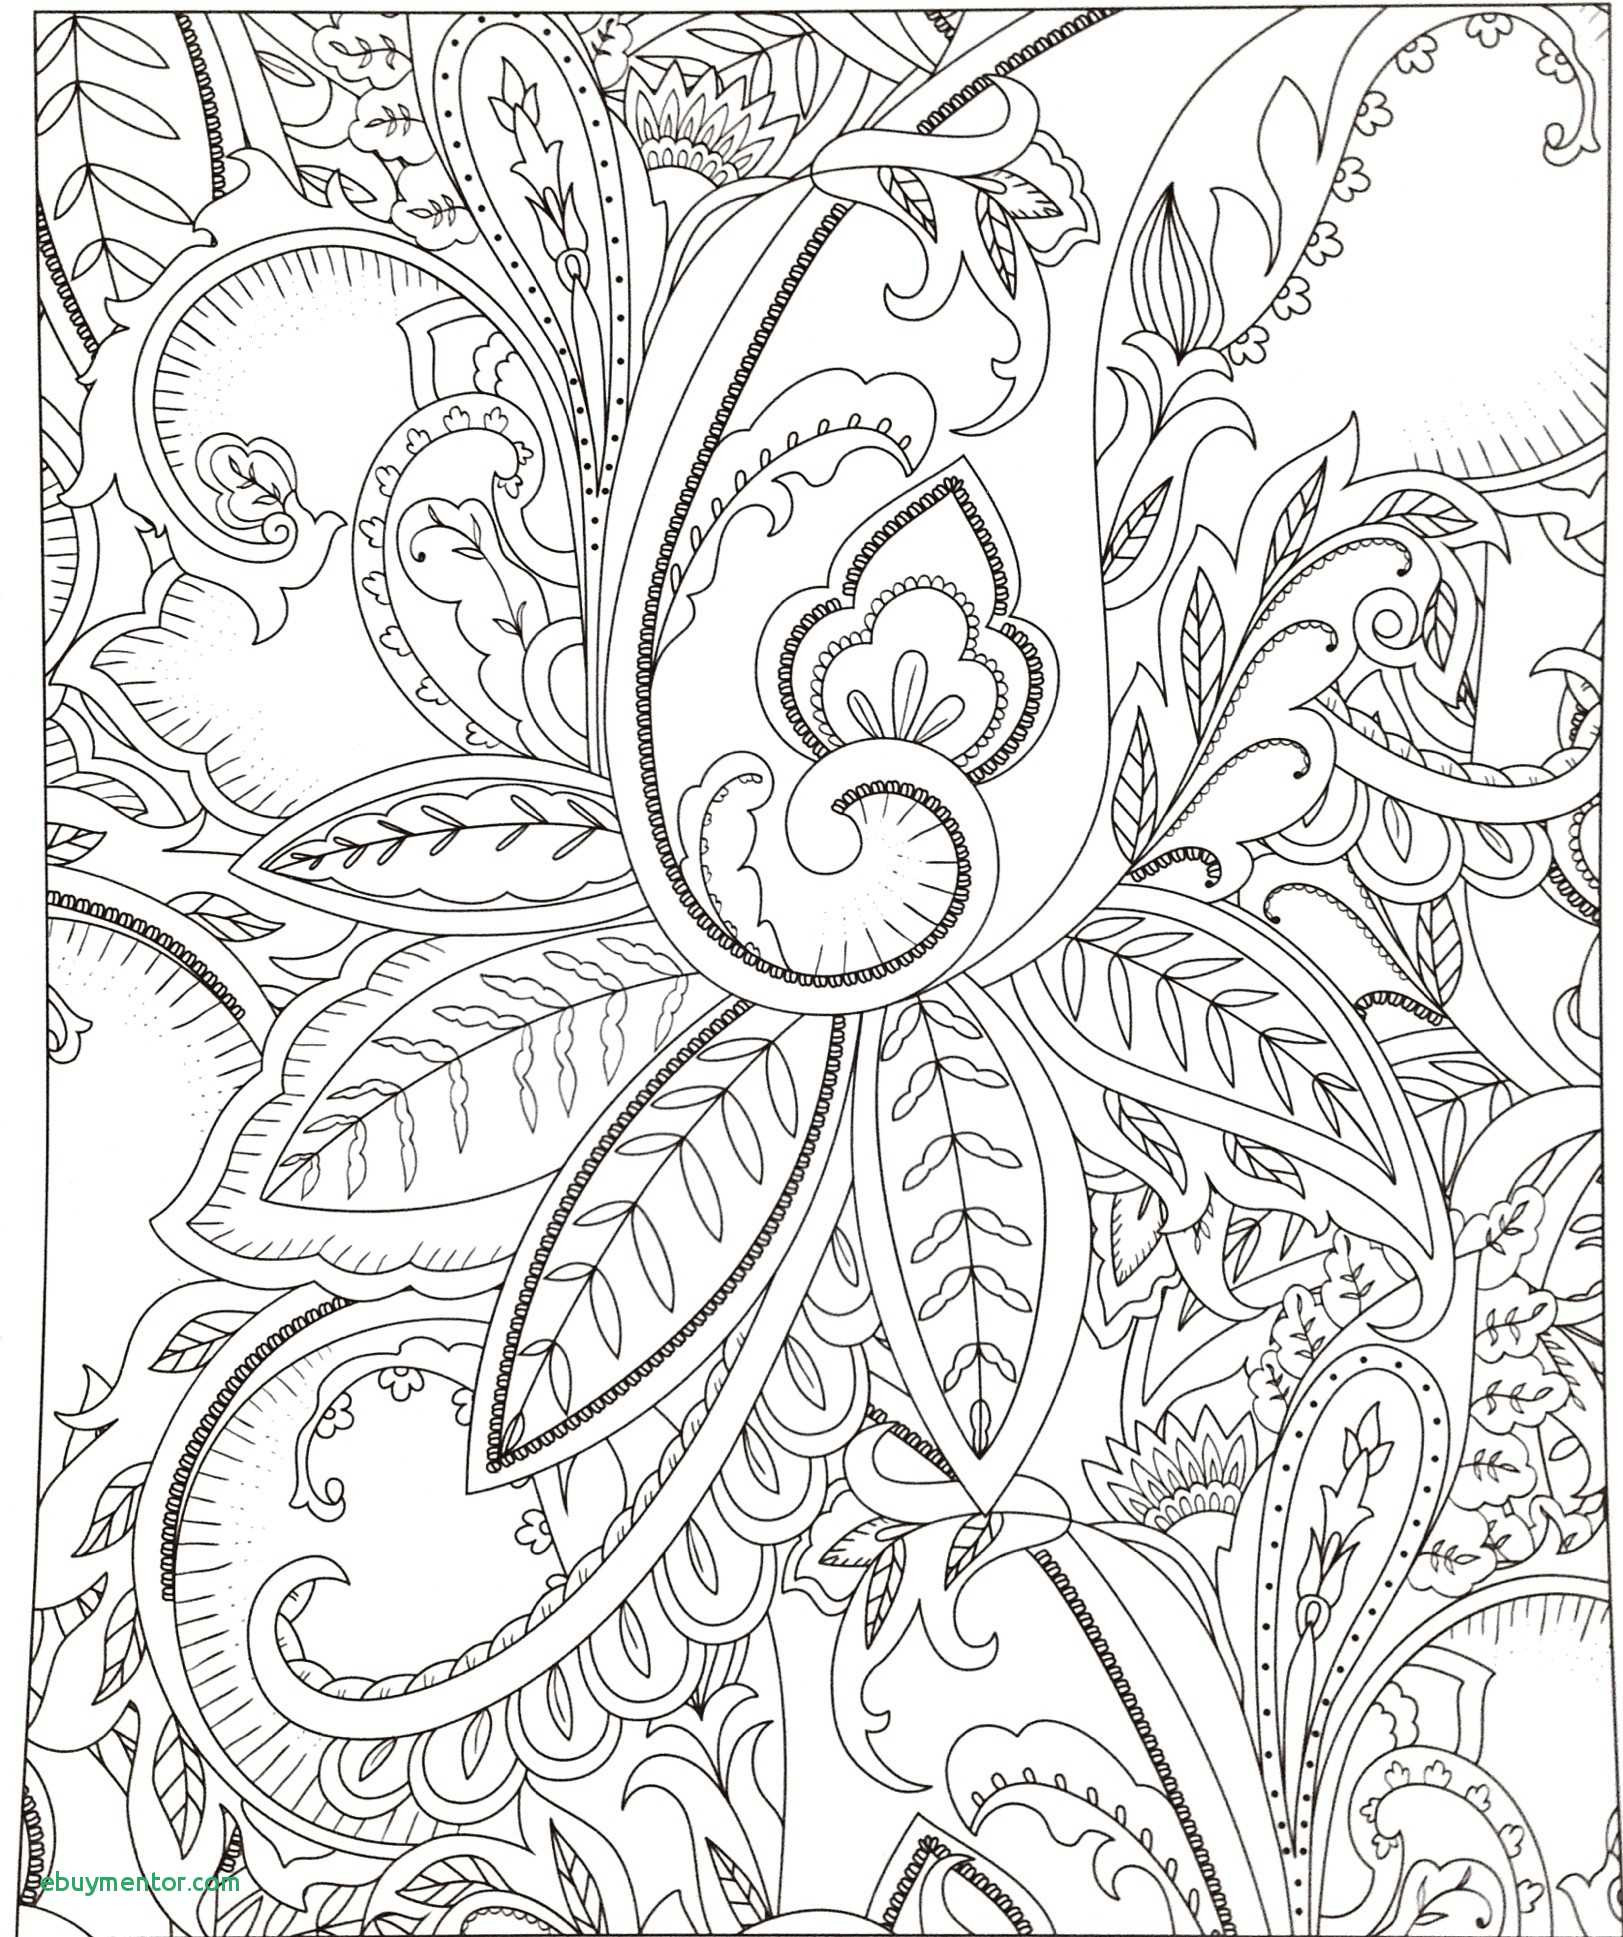 printable number coloring pages Collection-Coloring Page Kindergarten Coloring Pages Mandala Christmas Fresh Cool Coloring Printables 0d 8-d